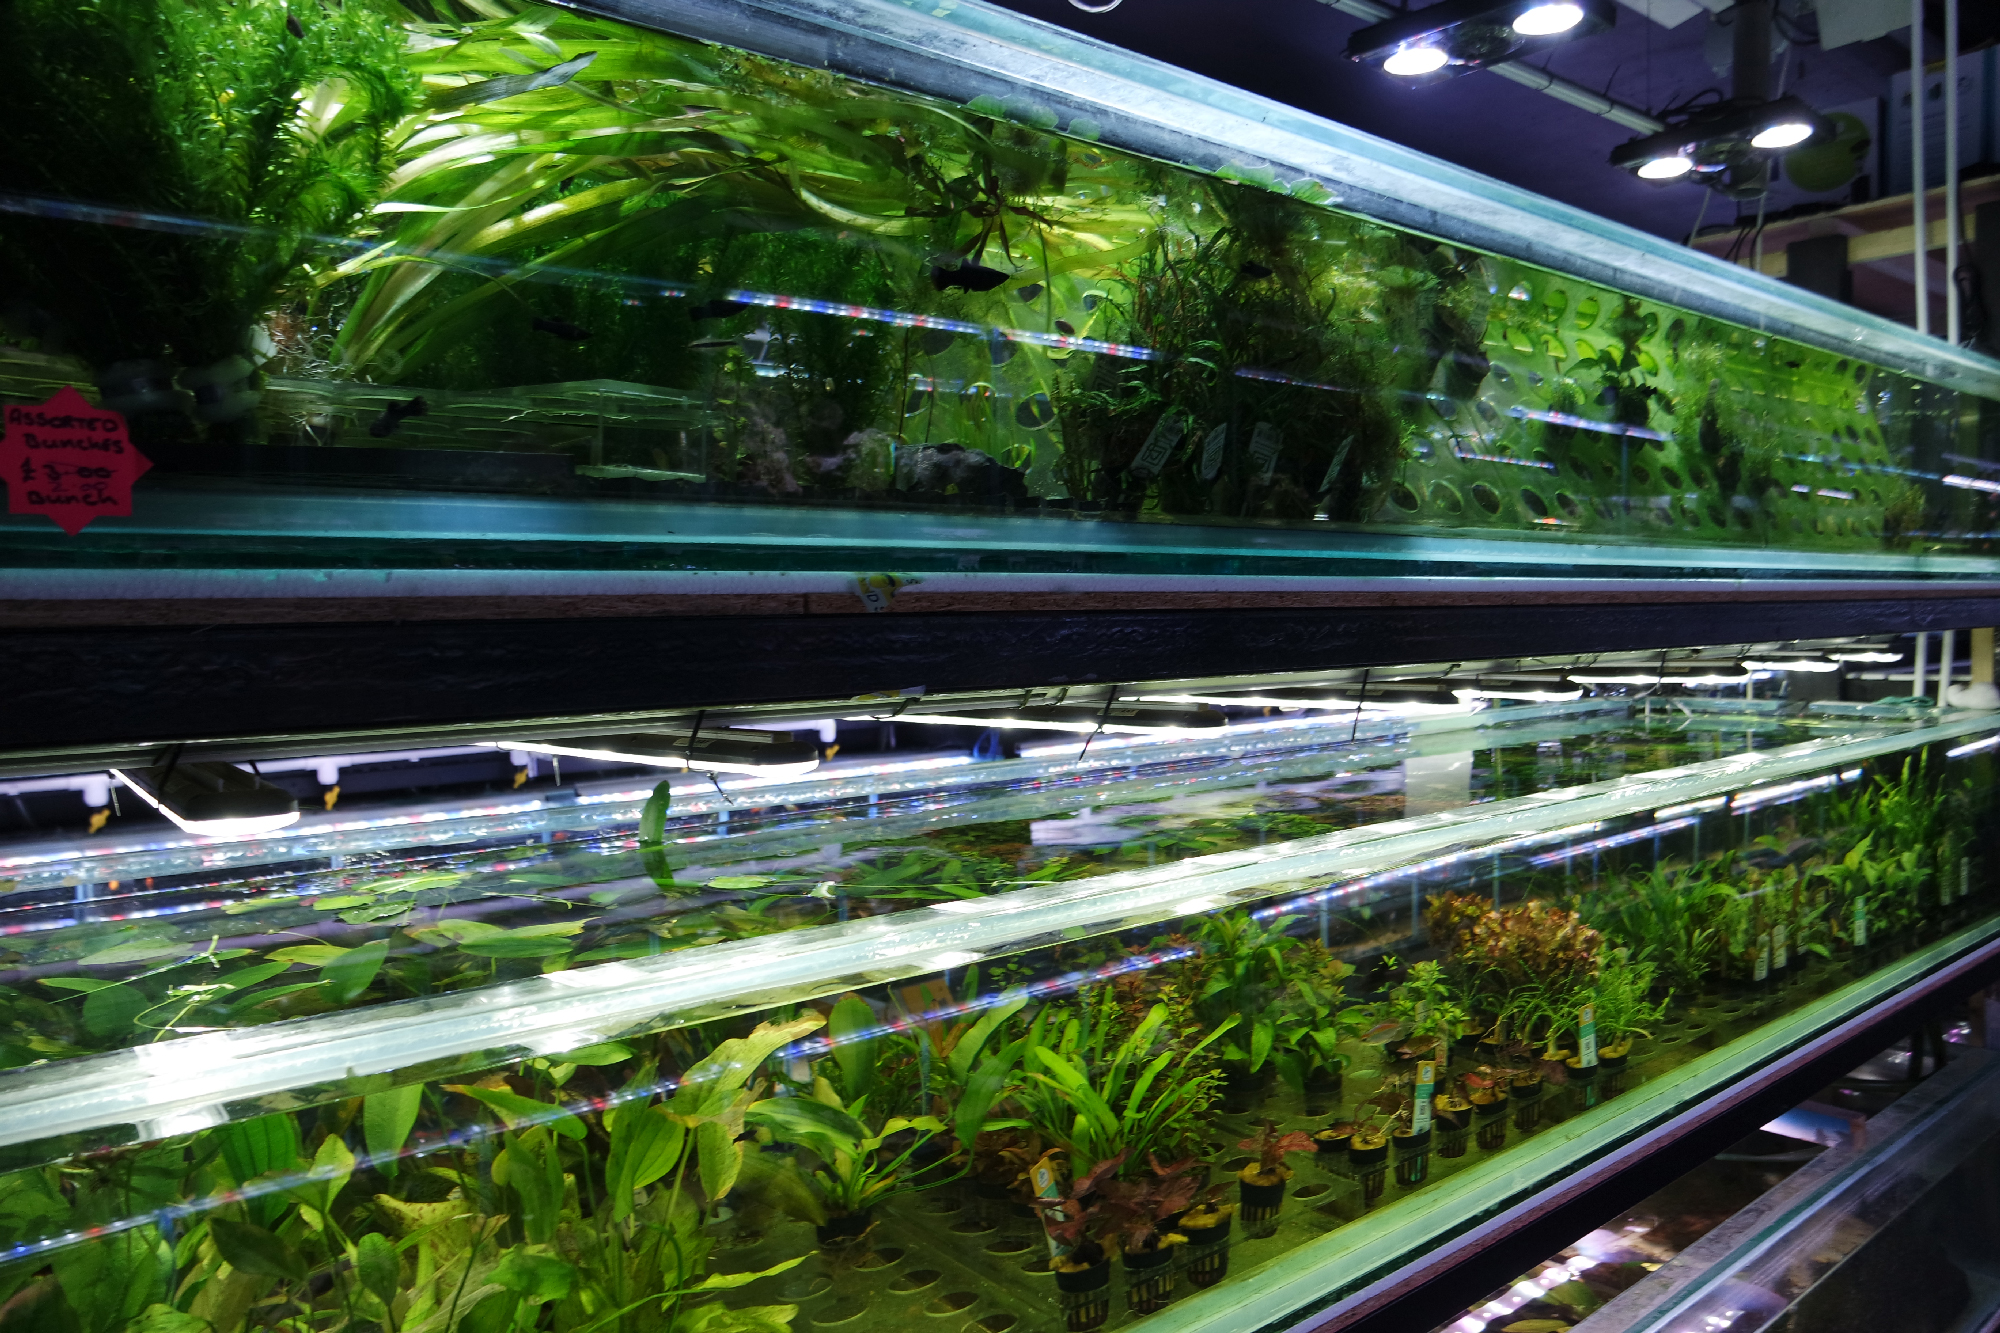 The Best Aquarium Plants That Even a Beginner Can Grow